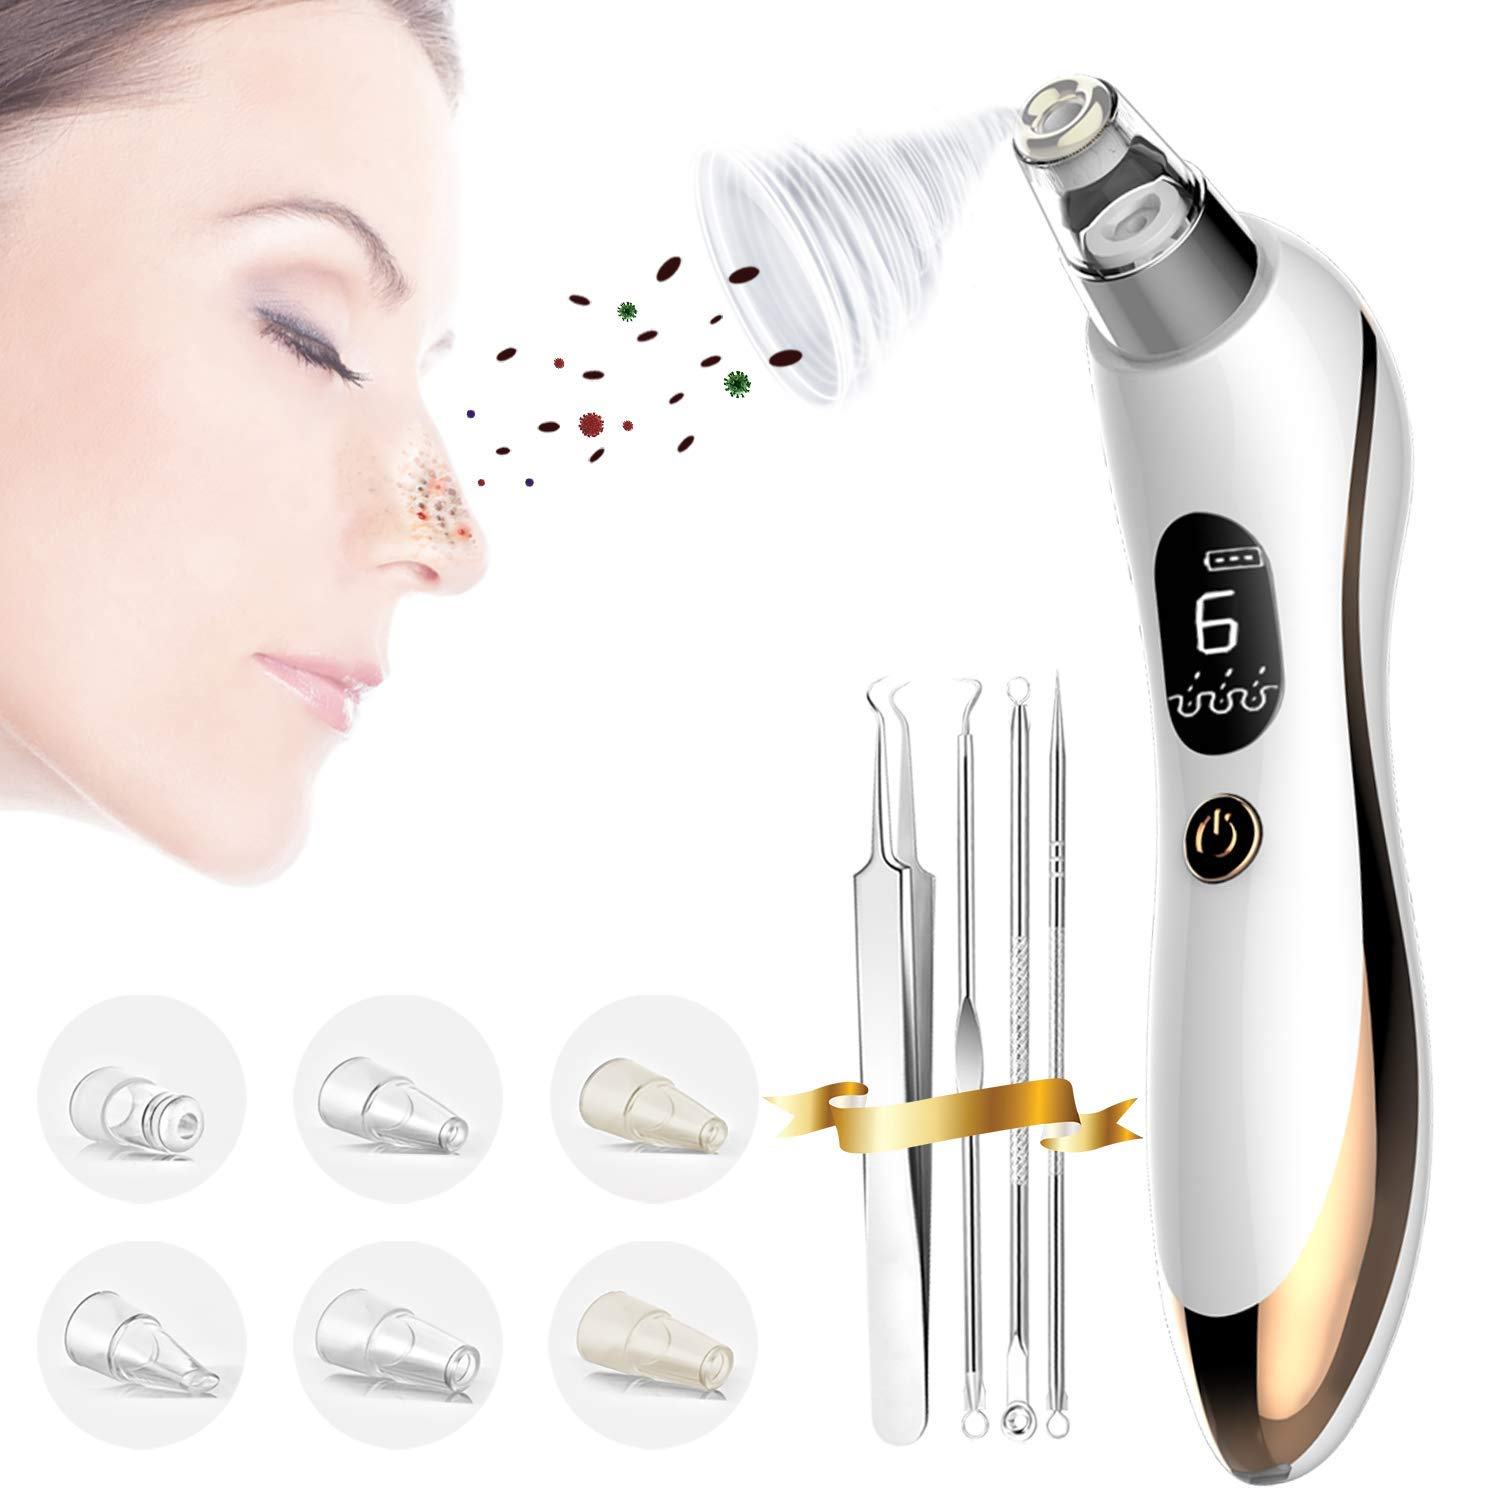 6 Levels Pro Blackhead Remover Vacuum- Strong Suction Pore Cleaner for Nose, Ear, Face, Skin Acne Pimple w/Removal Tool (Tweezer, Needle Kit), Electric, USB Rechargeable, Led Screen, Men, Women, Gold